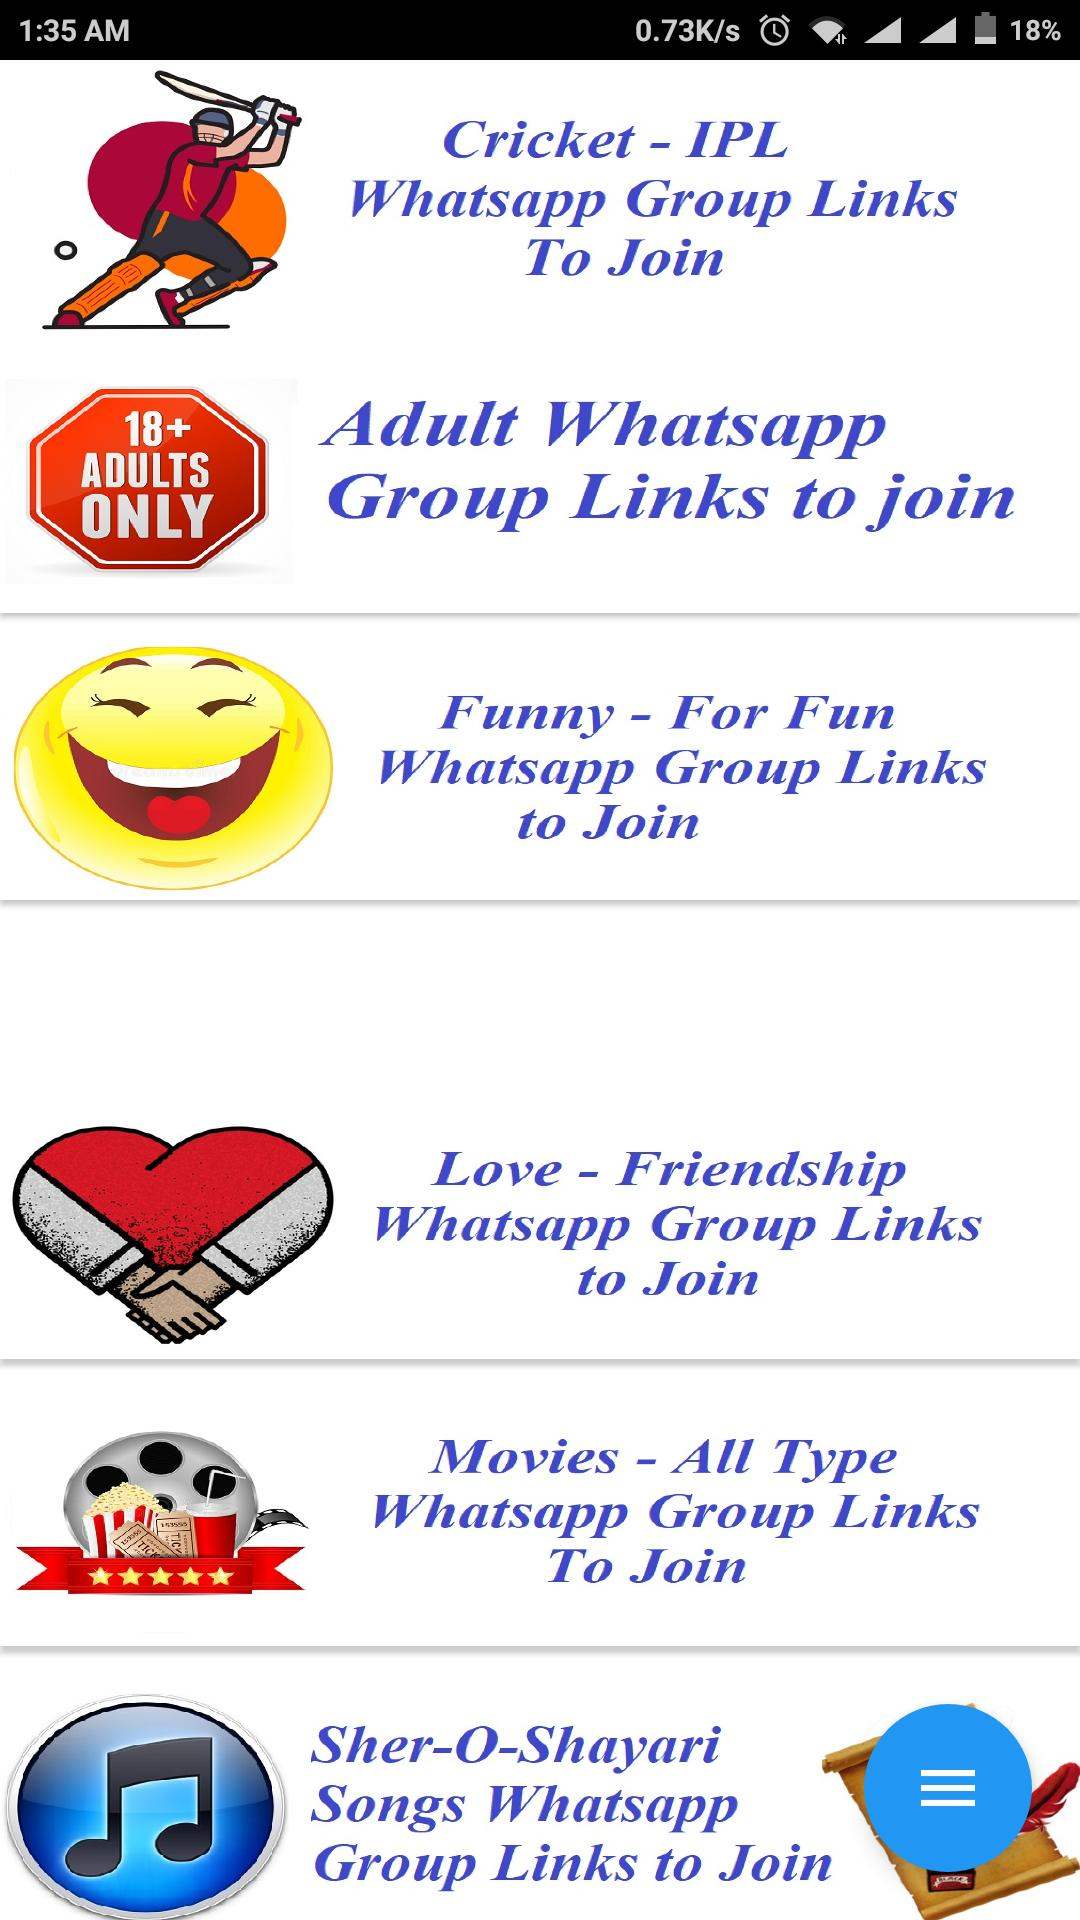 Whatsapp Group Links - Adult Whatsapp Group Links cho Android - Tải